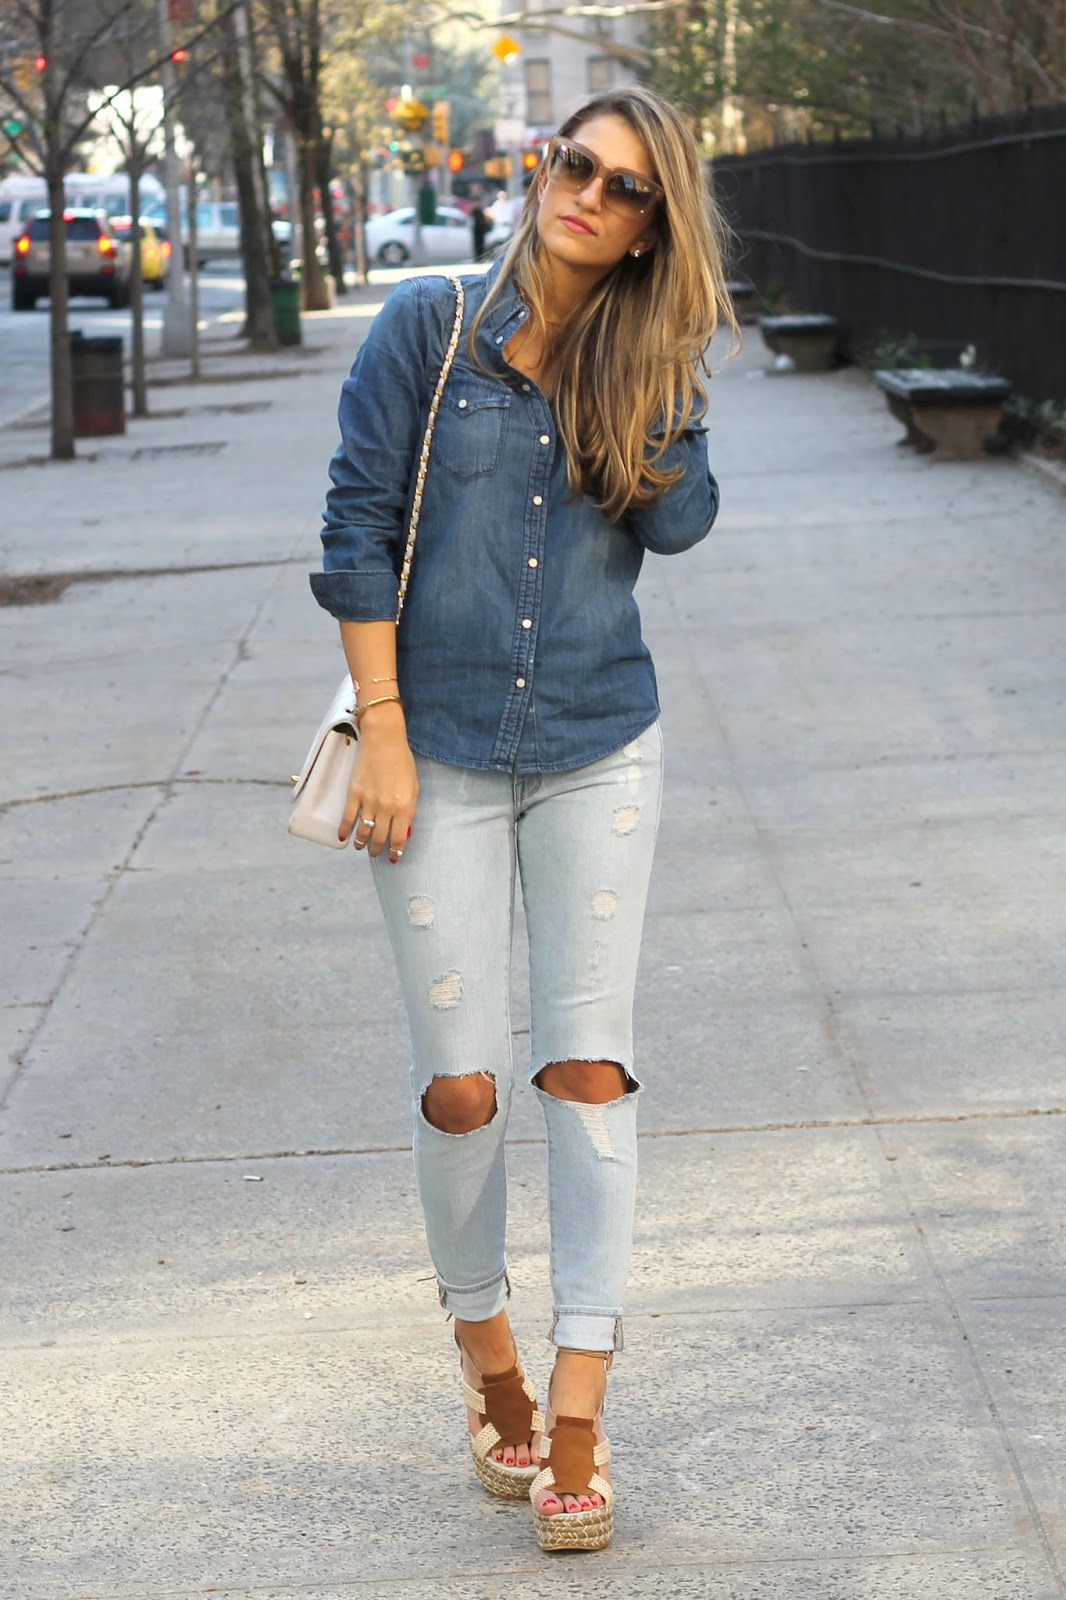 street style, ny blogger, denim on denim outfit, Frame Denim with Knee holes,  Free People High Society Platform Sandals